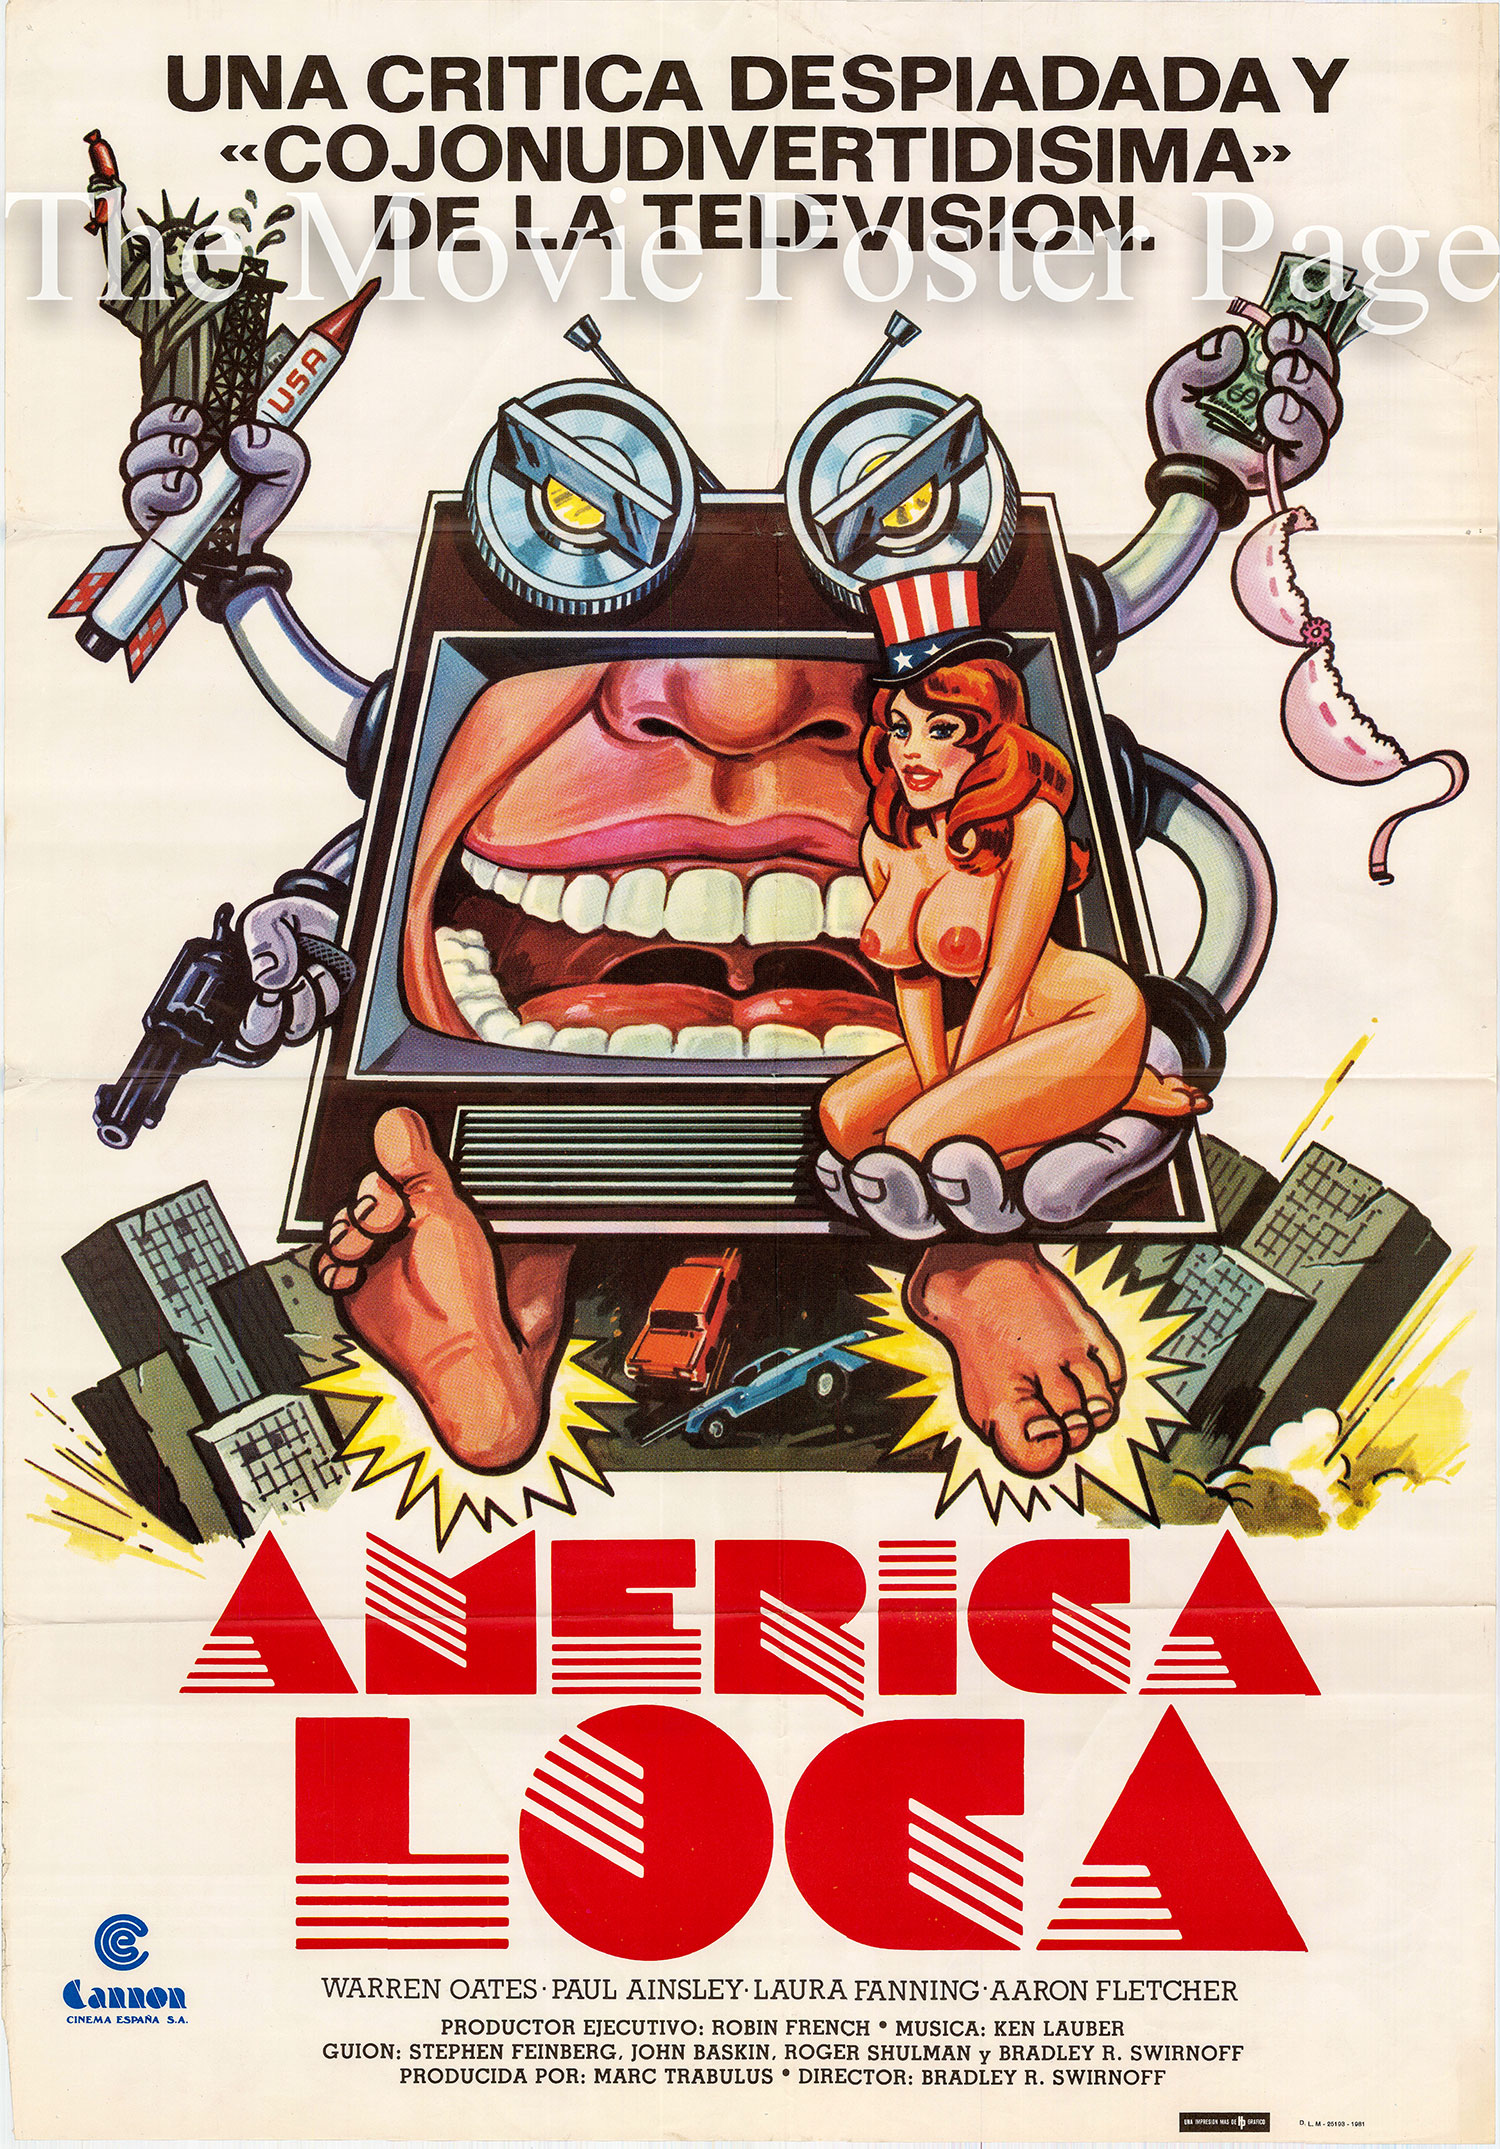 Pictured is a Spanish one-sheet poster for the 1977 John Baskin film American Raspberry starring Warren Oates.